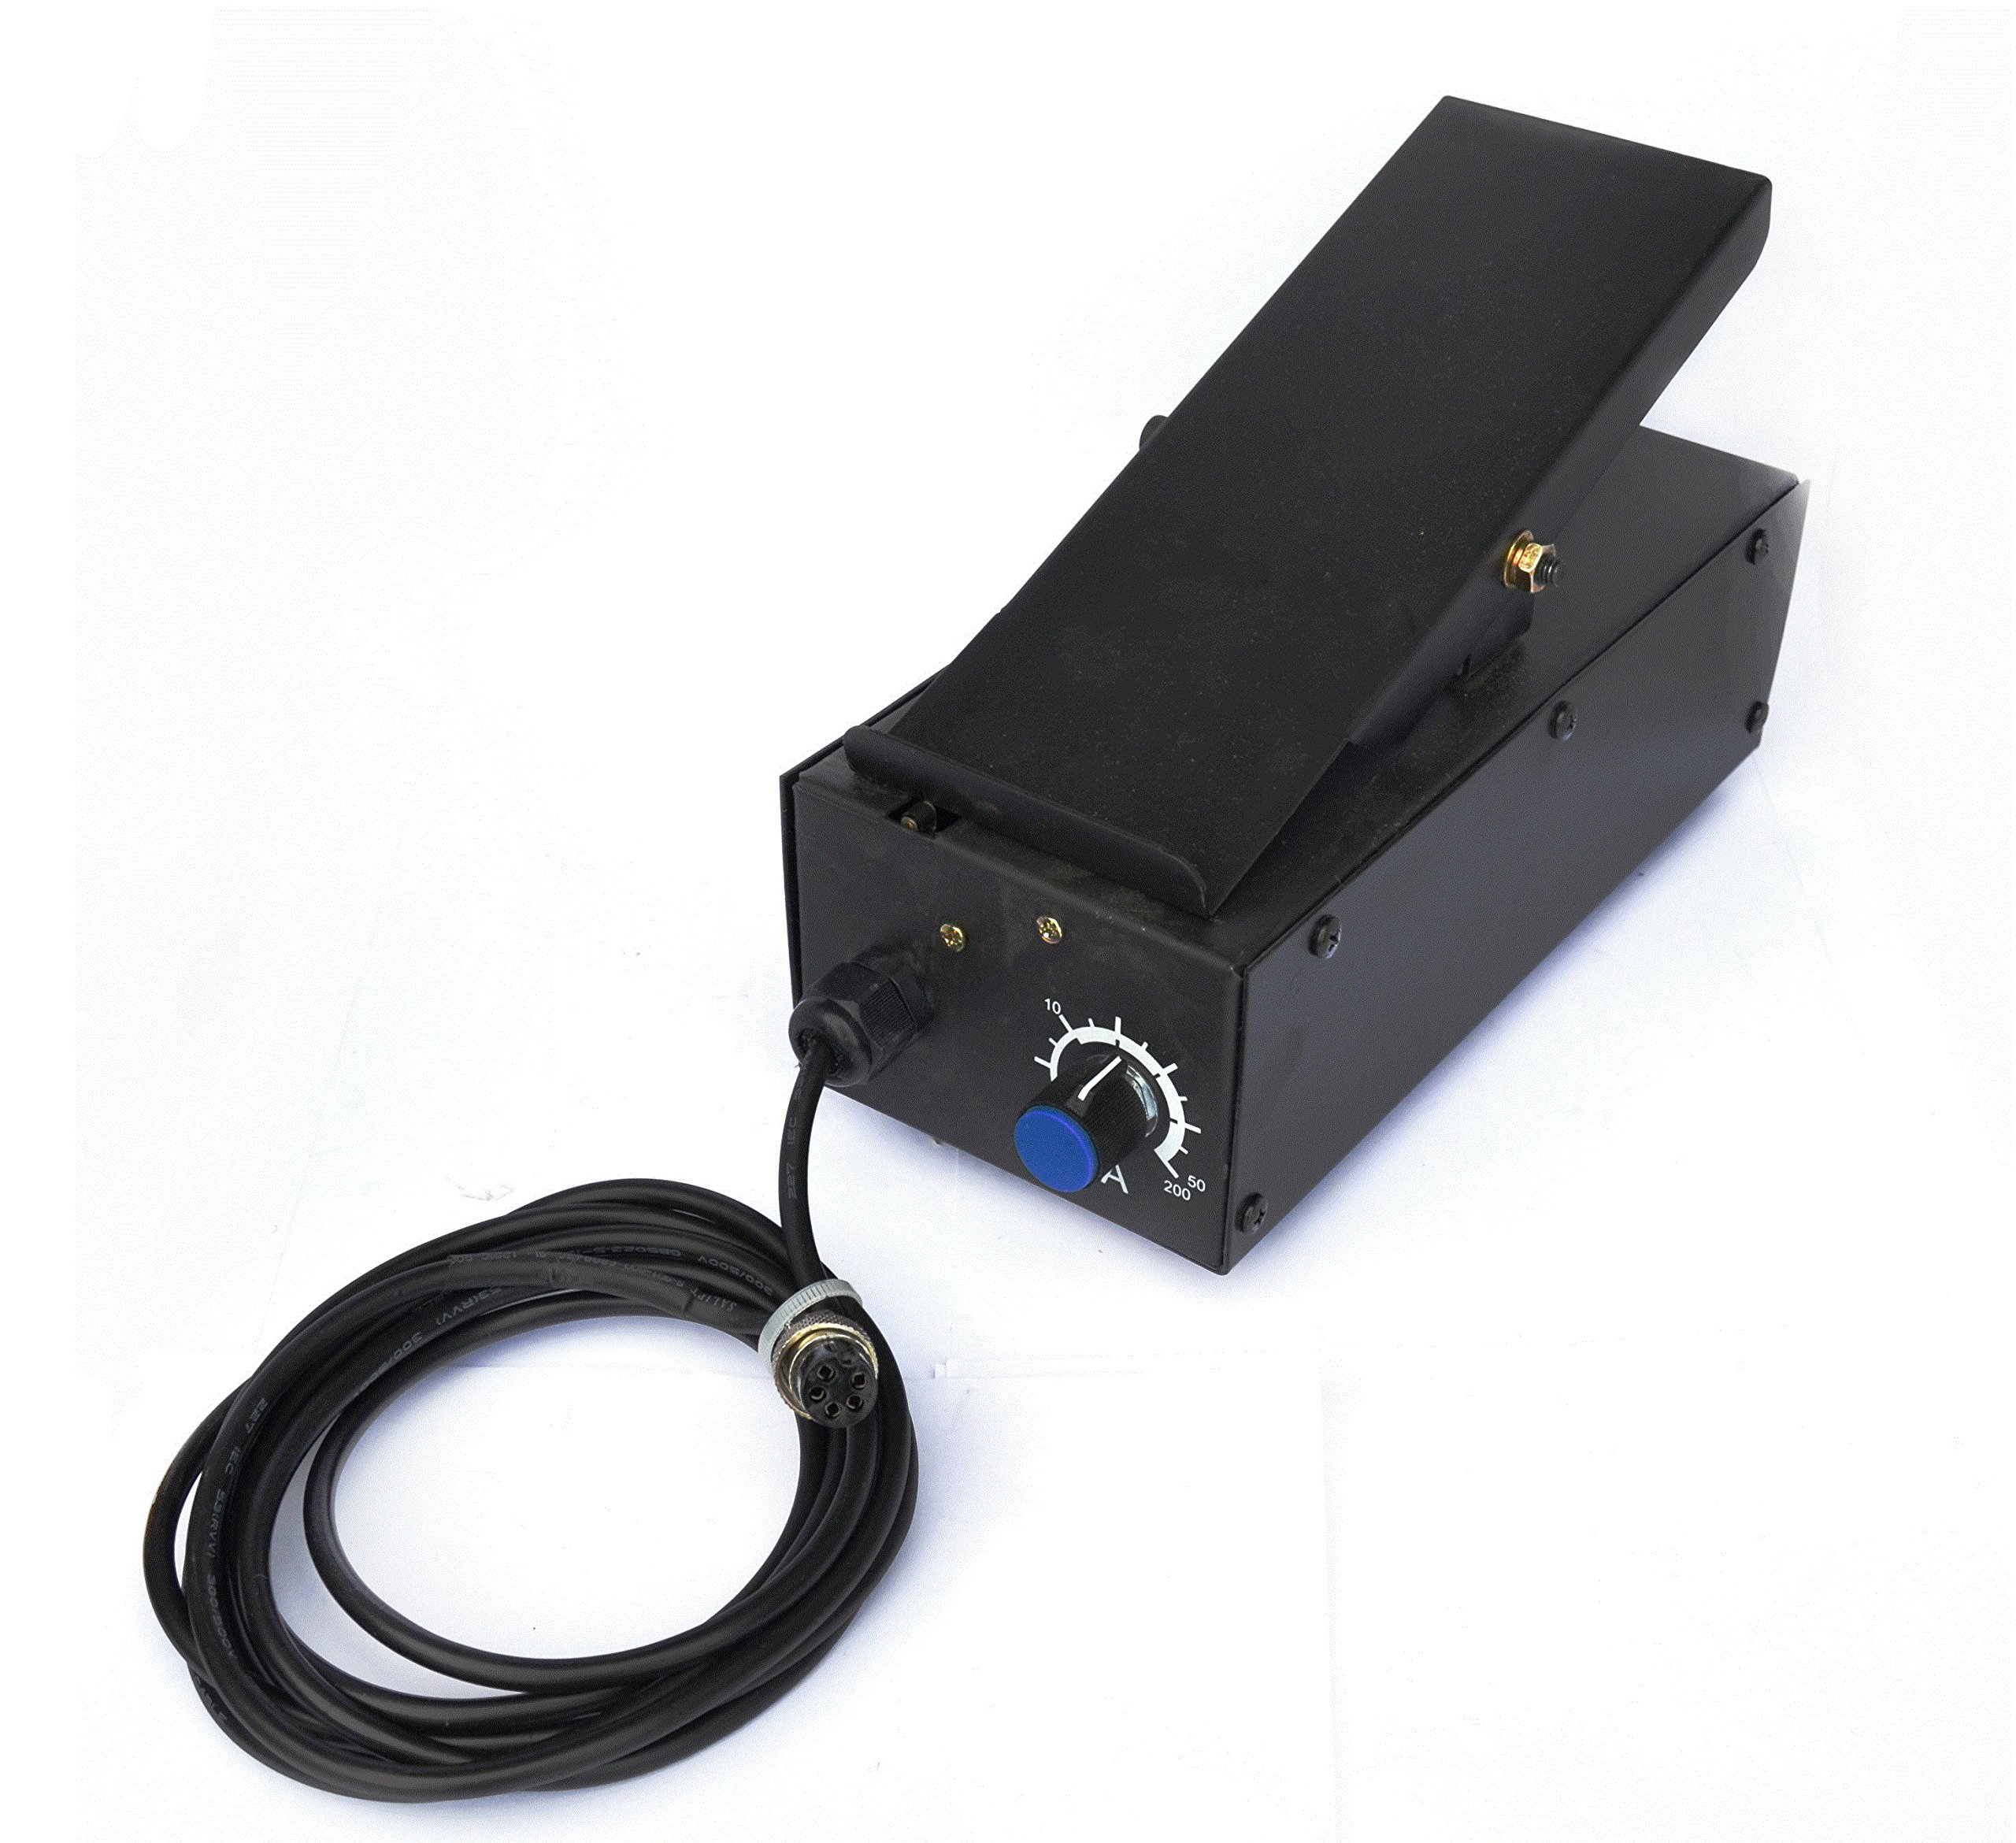 Lotos Technology FP05 Foot Pedal for Plasma Cutter Welder Amp Control 5 Pin Lotos FP05 for Plasma Cutter and Welder Combos CT520D LTPDC2000D by Lotos Technology